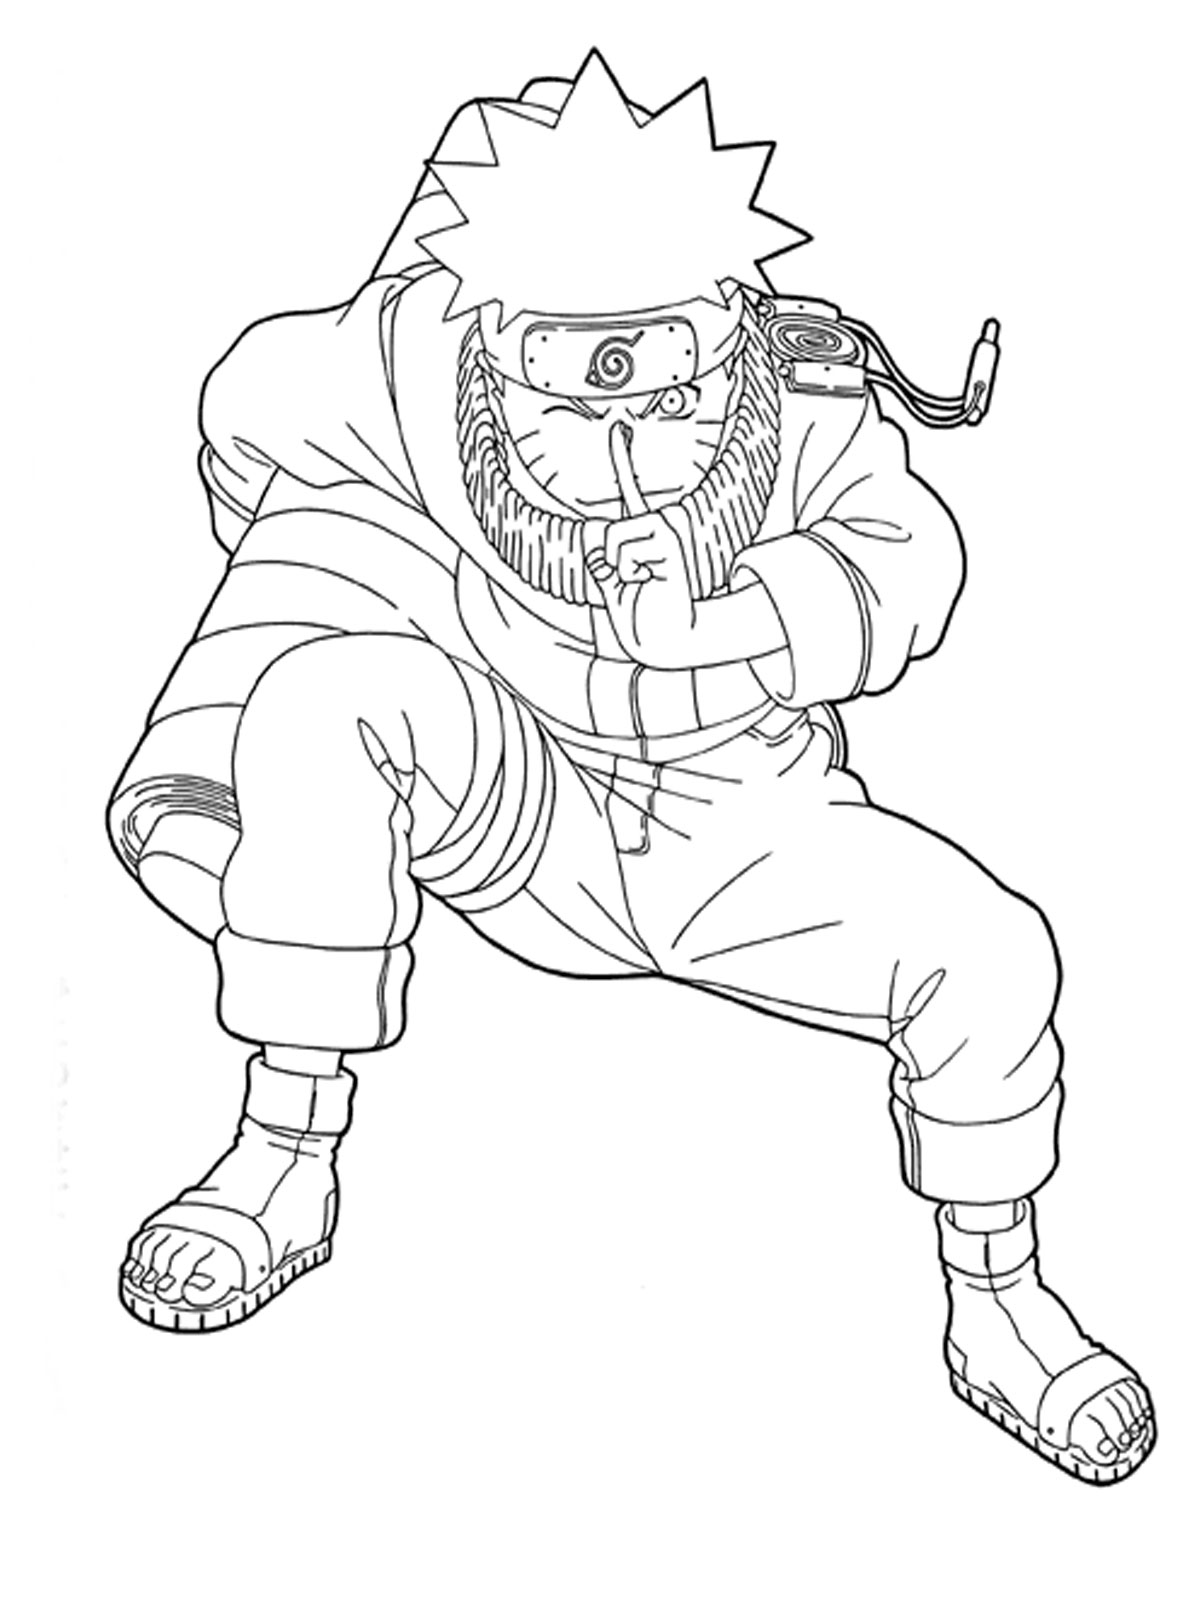 naruto shippuden coloring book naruto shippuden coloring pages to download and print for free shippuden book coloring naruto